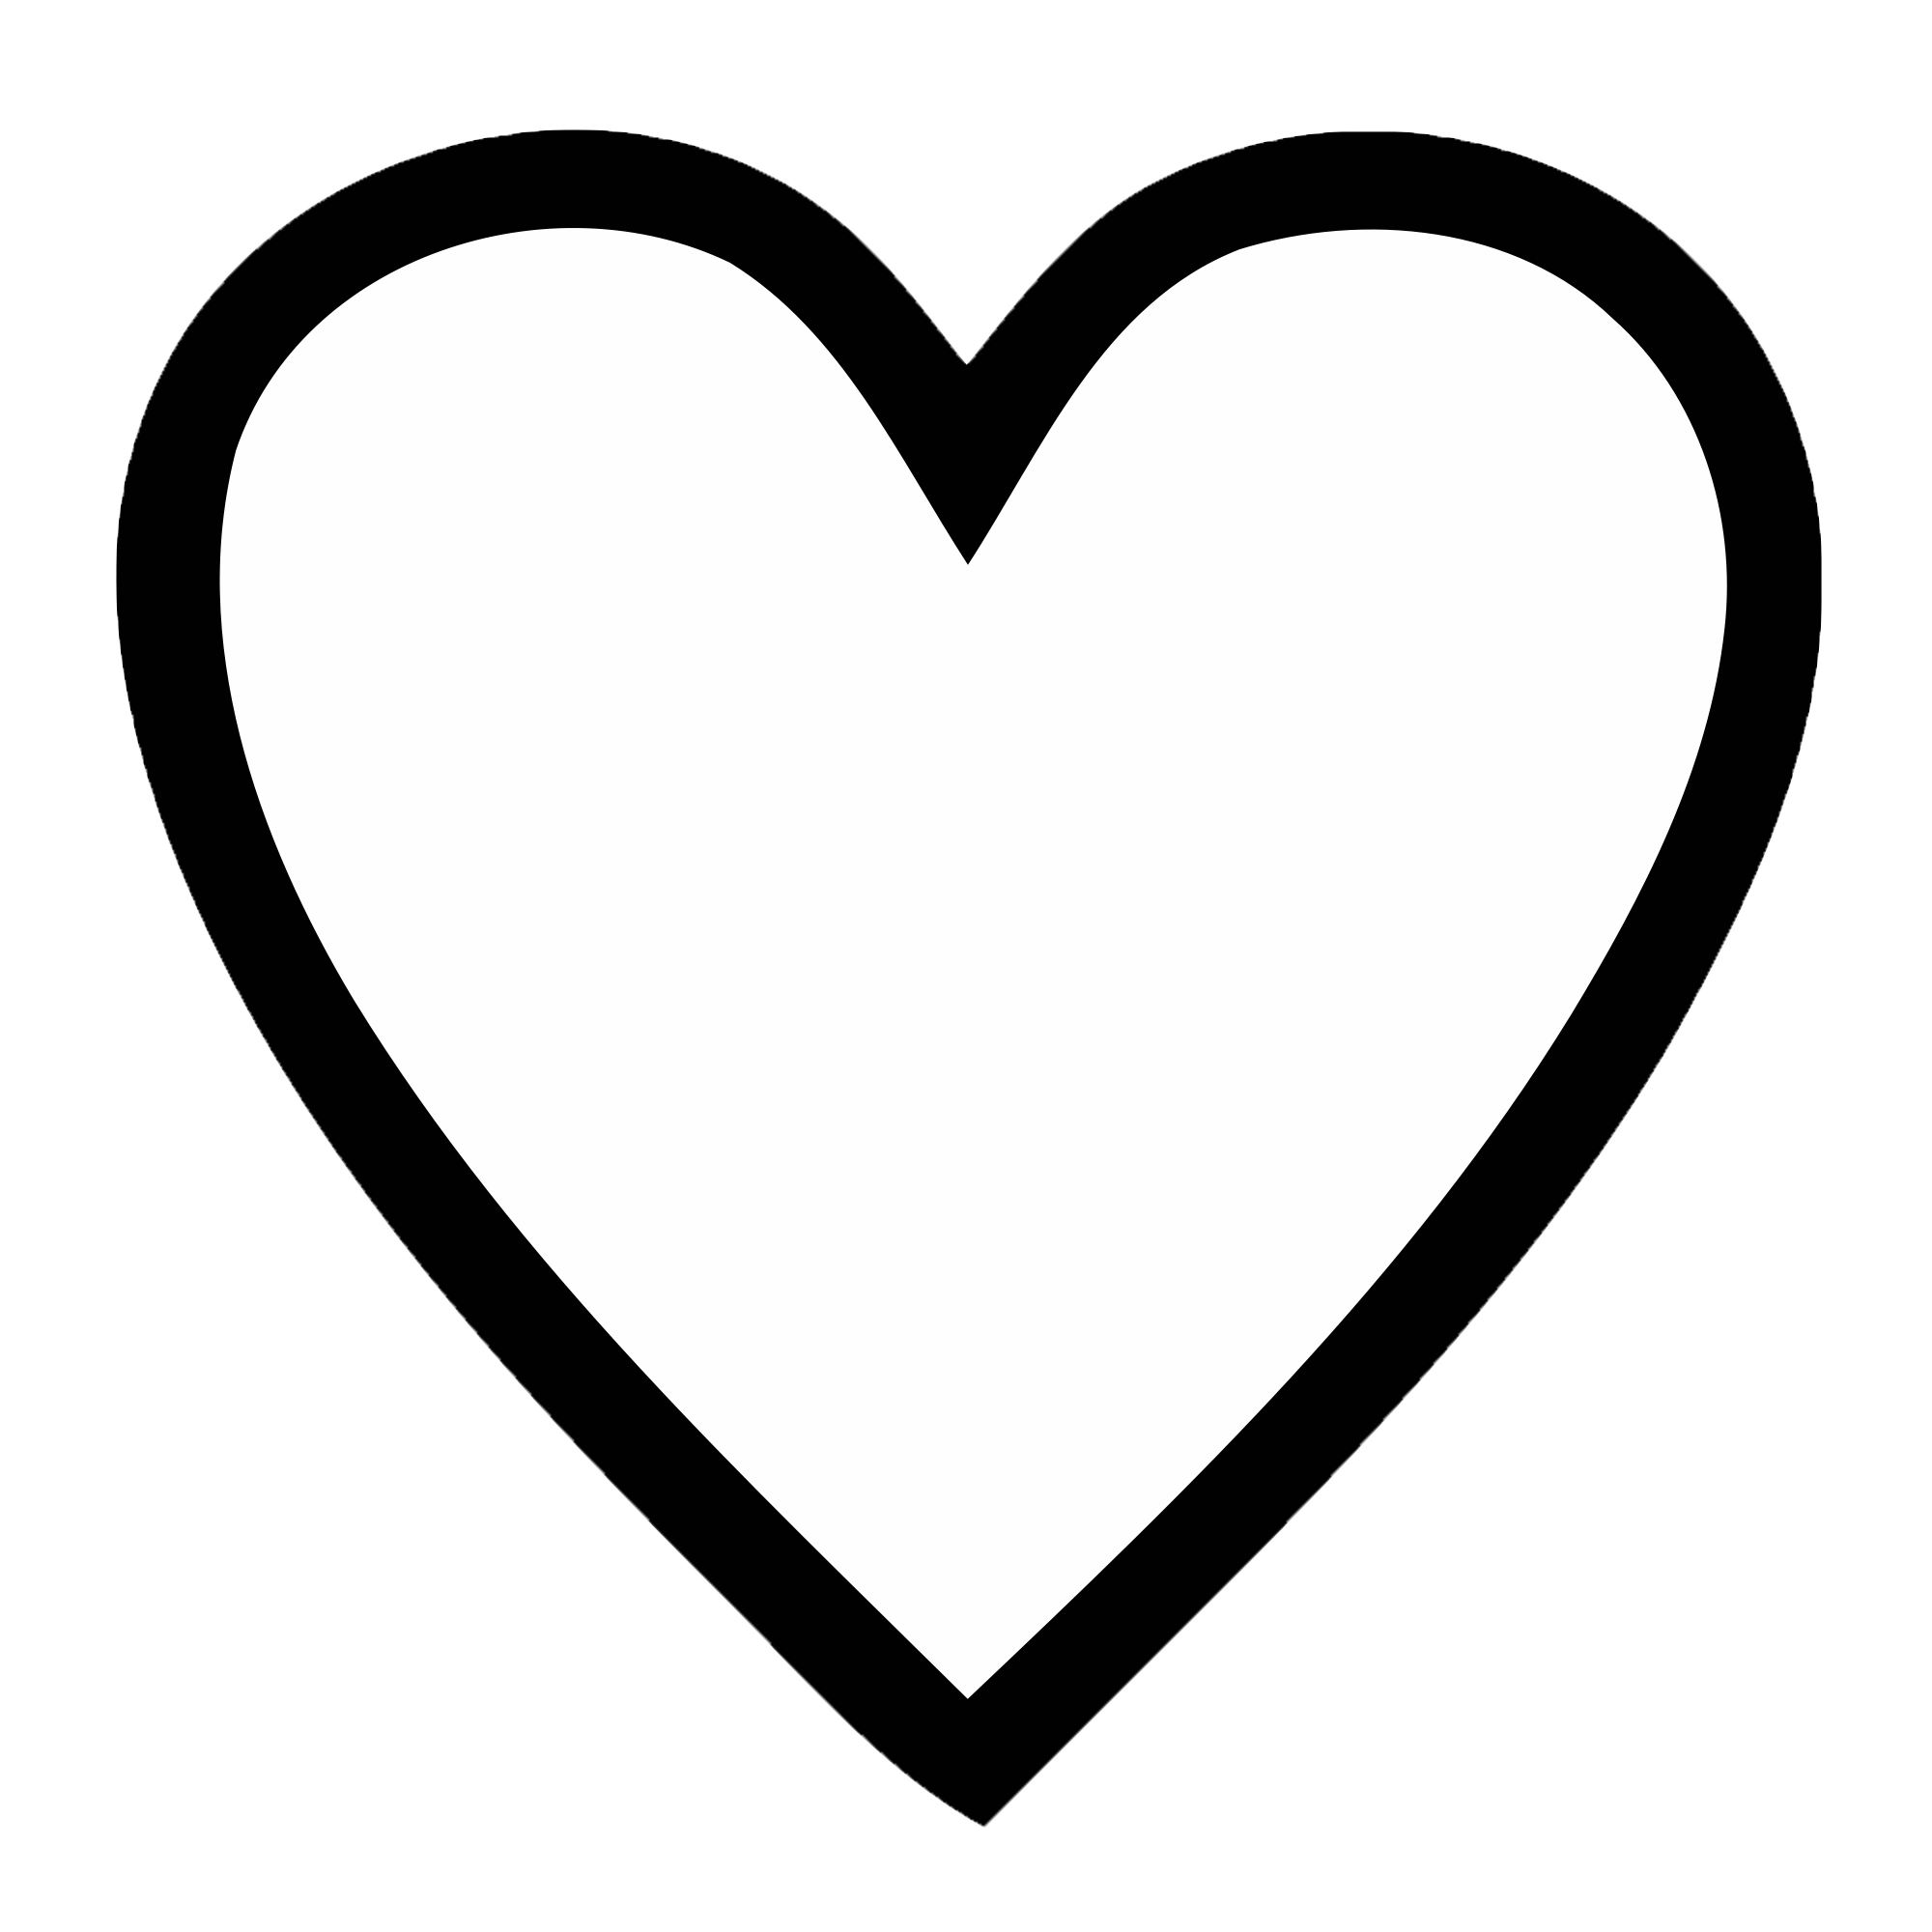 Heart, png clipart. Heart black transparent